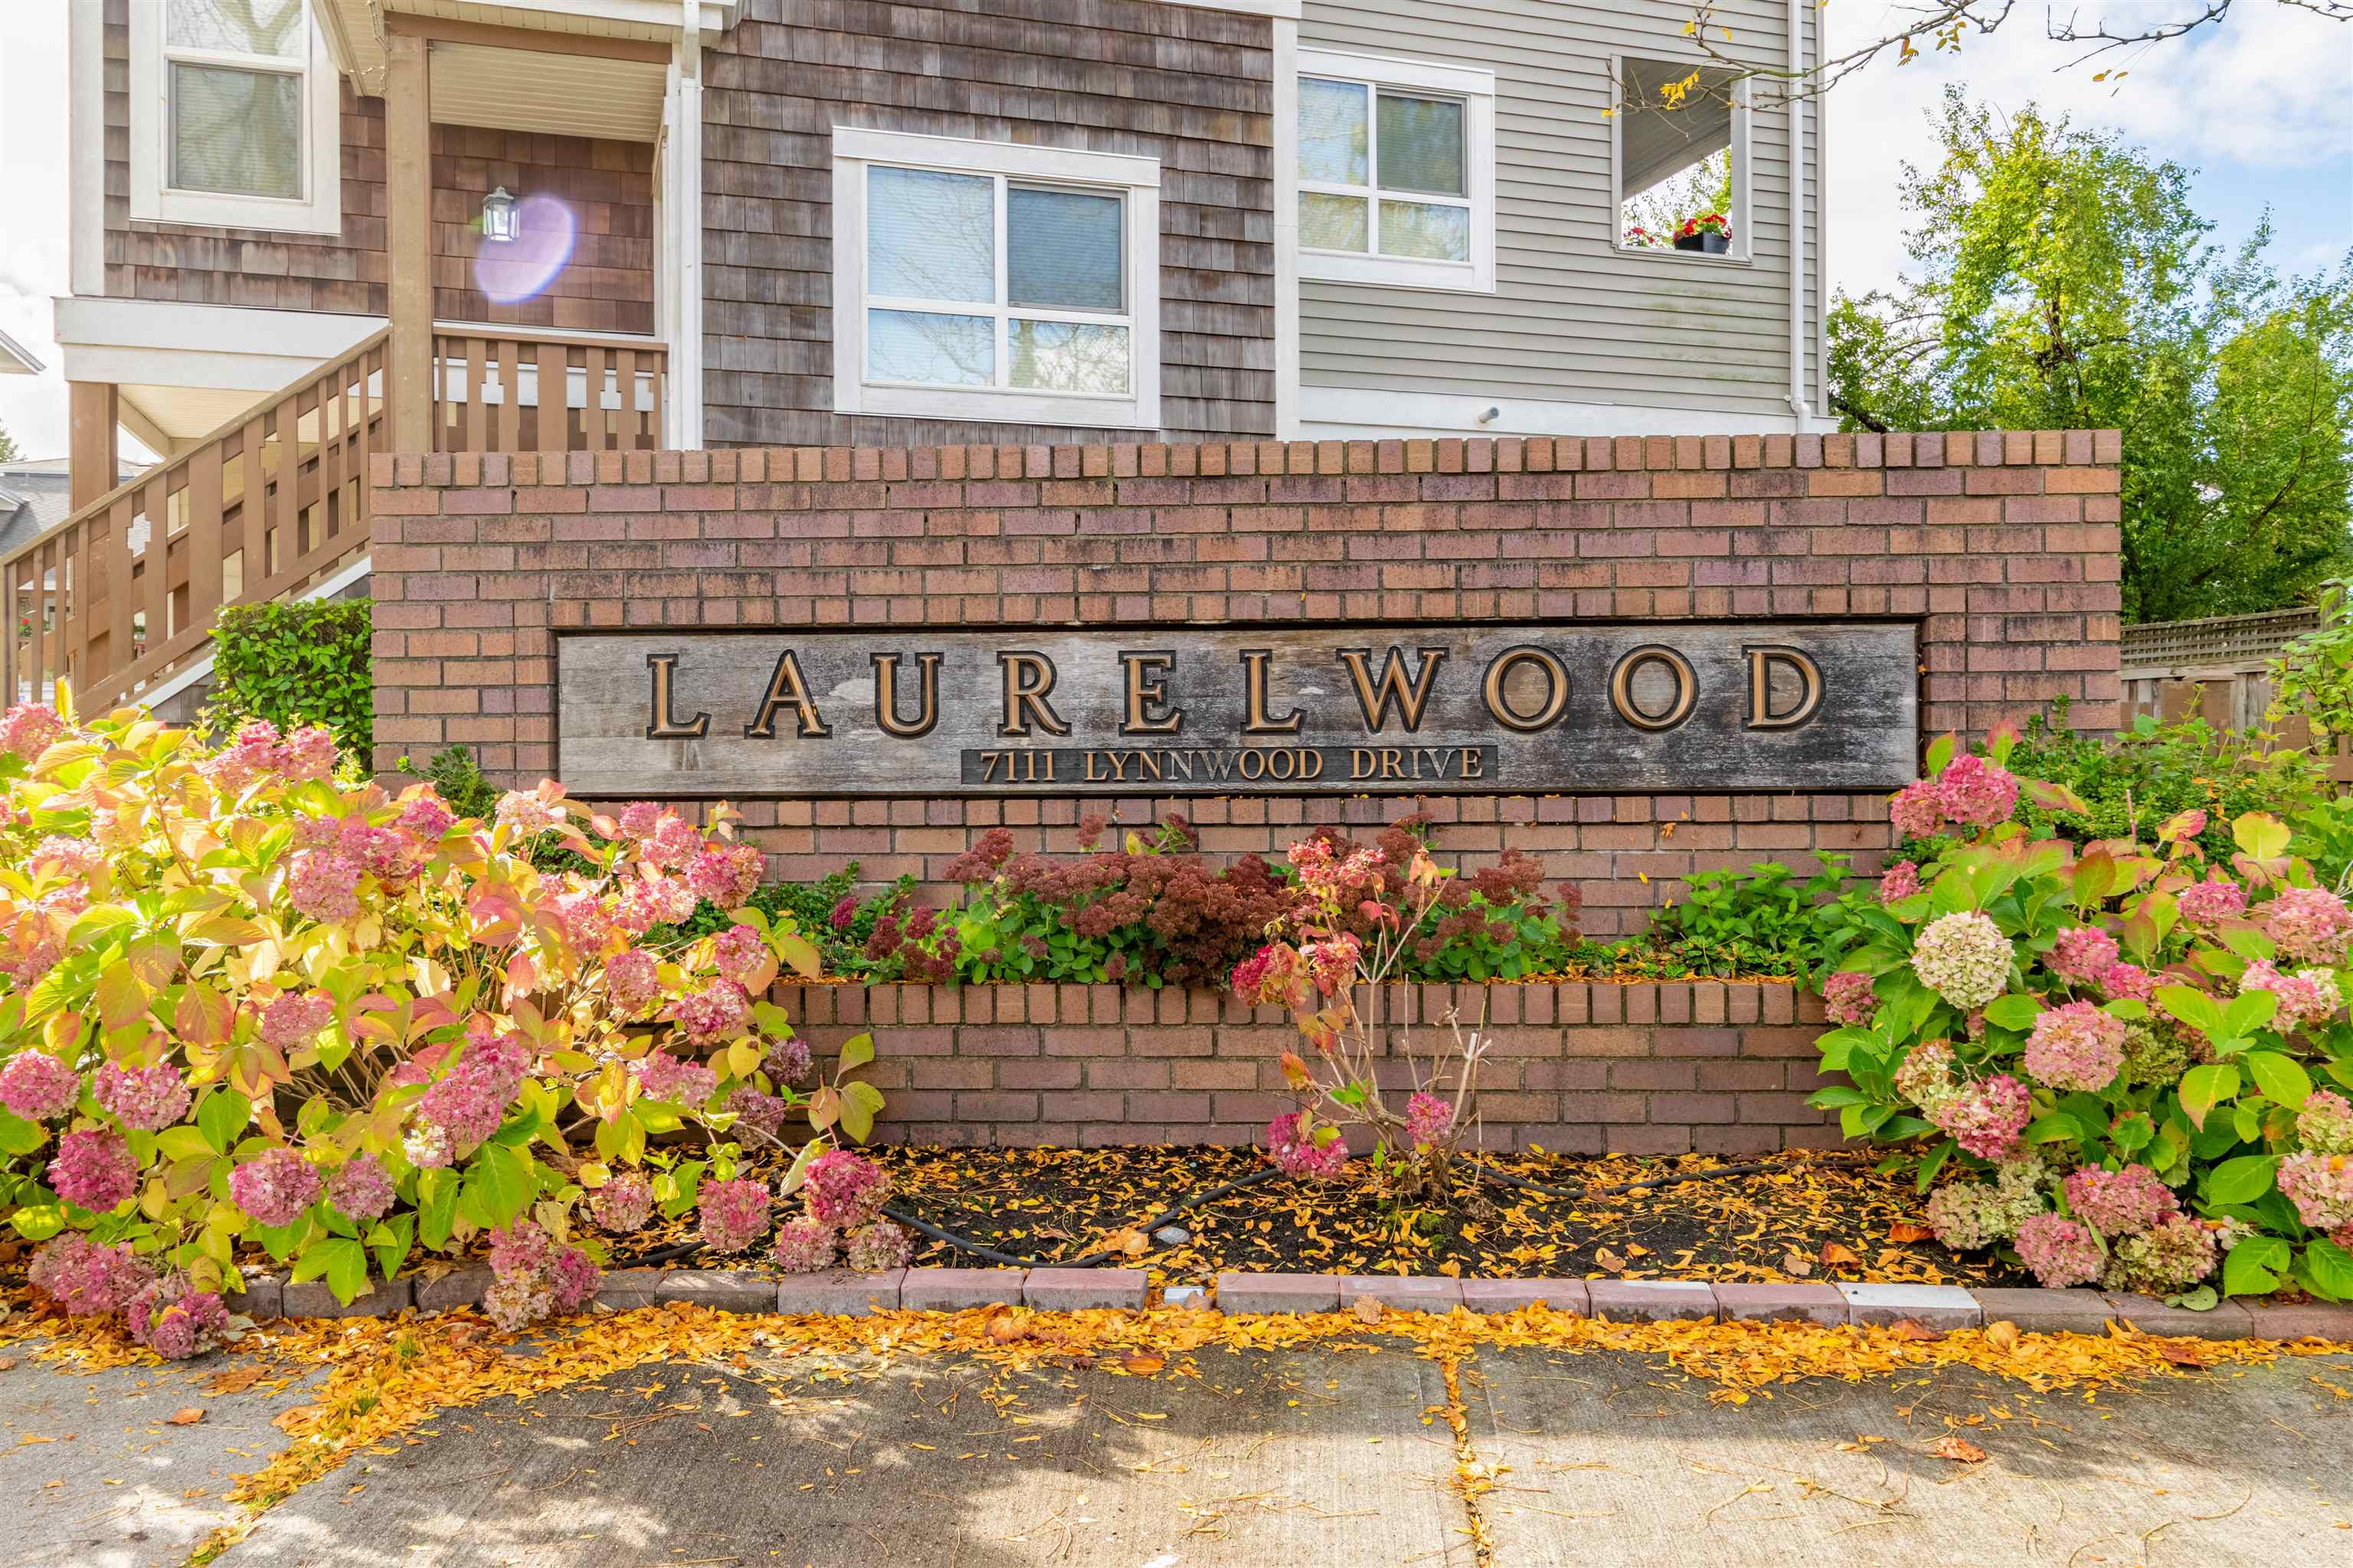 21 7111 LYNNWOOD DRIVE - Granville Townhouse for sale, 1 Bedroom (R2624550)